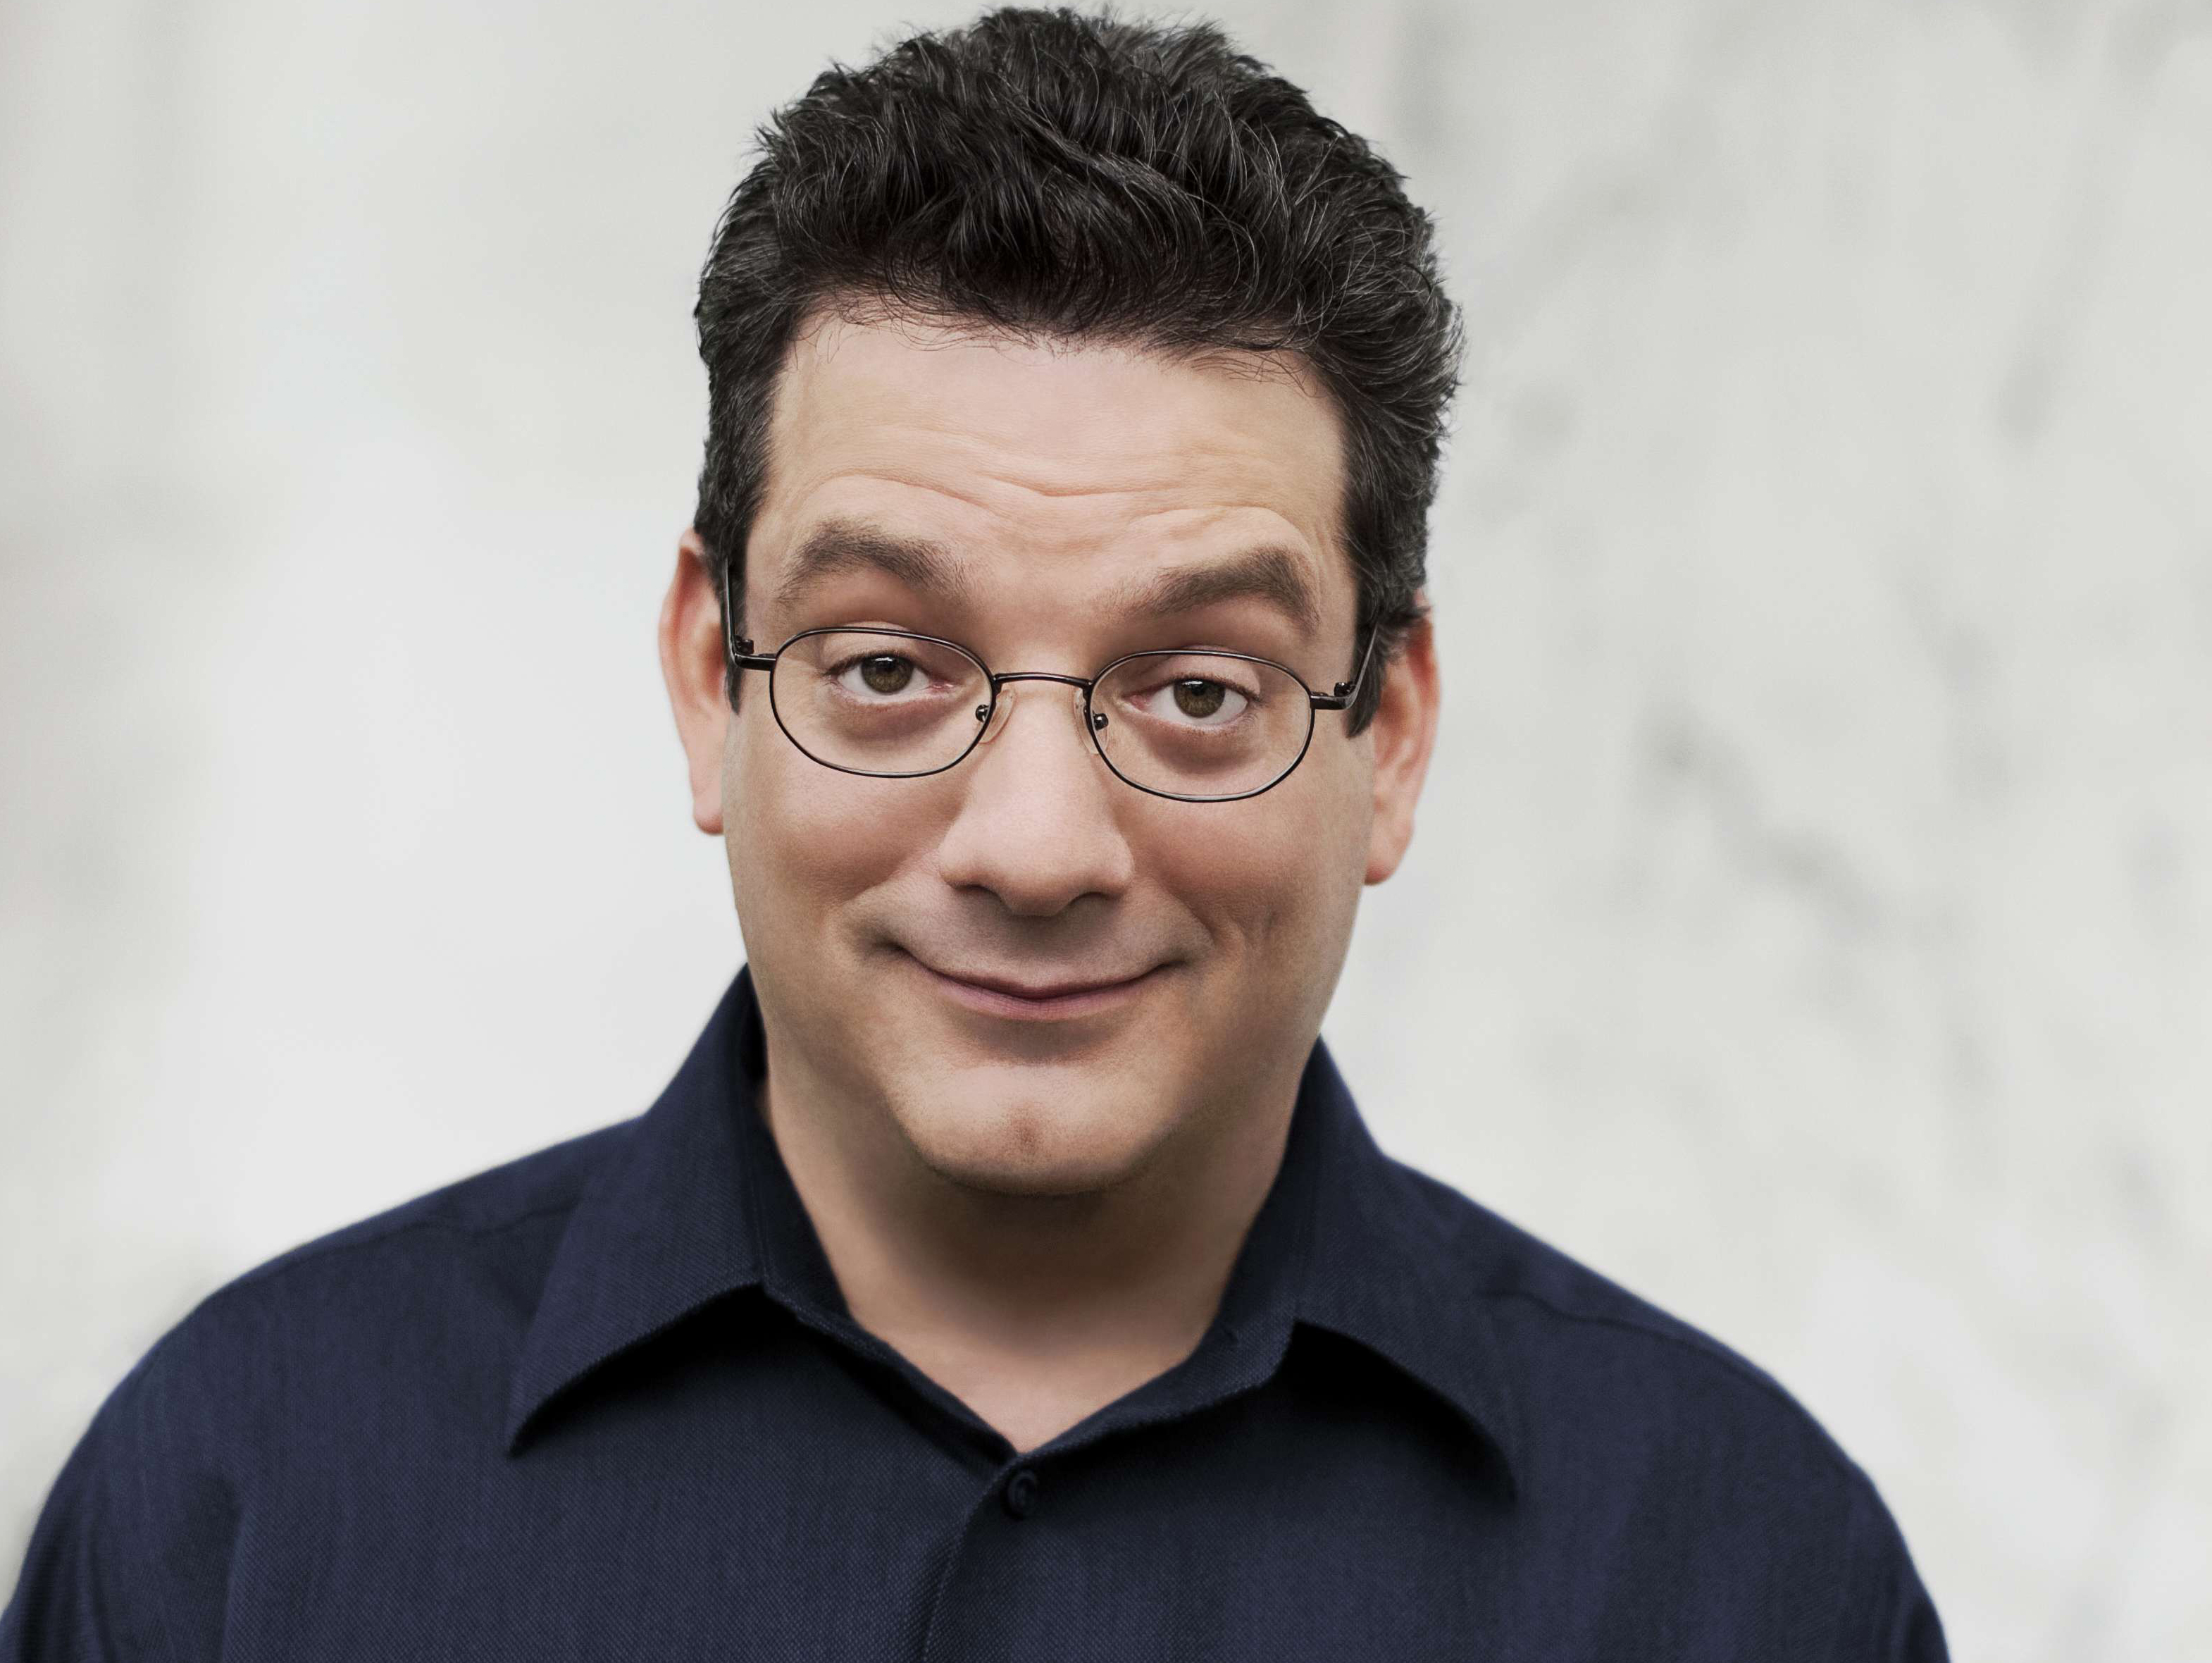 The Alternative Show with Andy Kindler Just for Laughs, Montreal QC, July 26